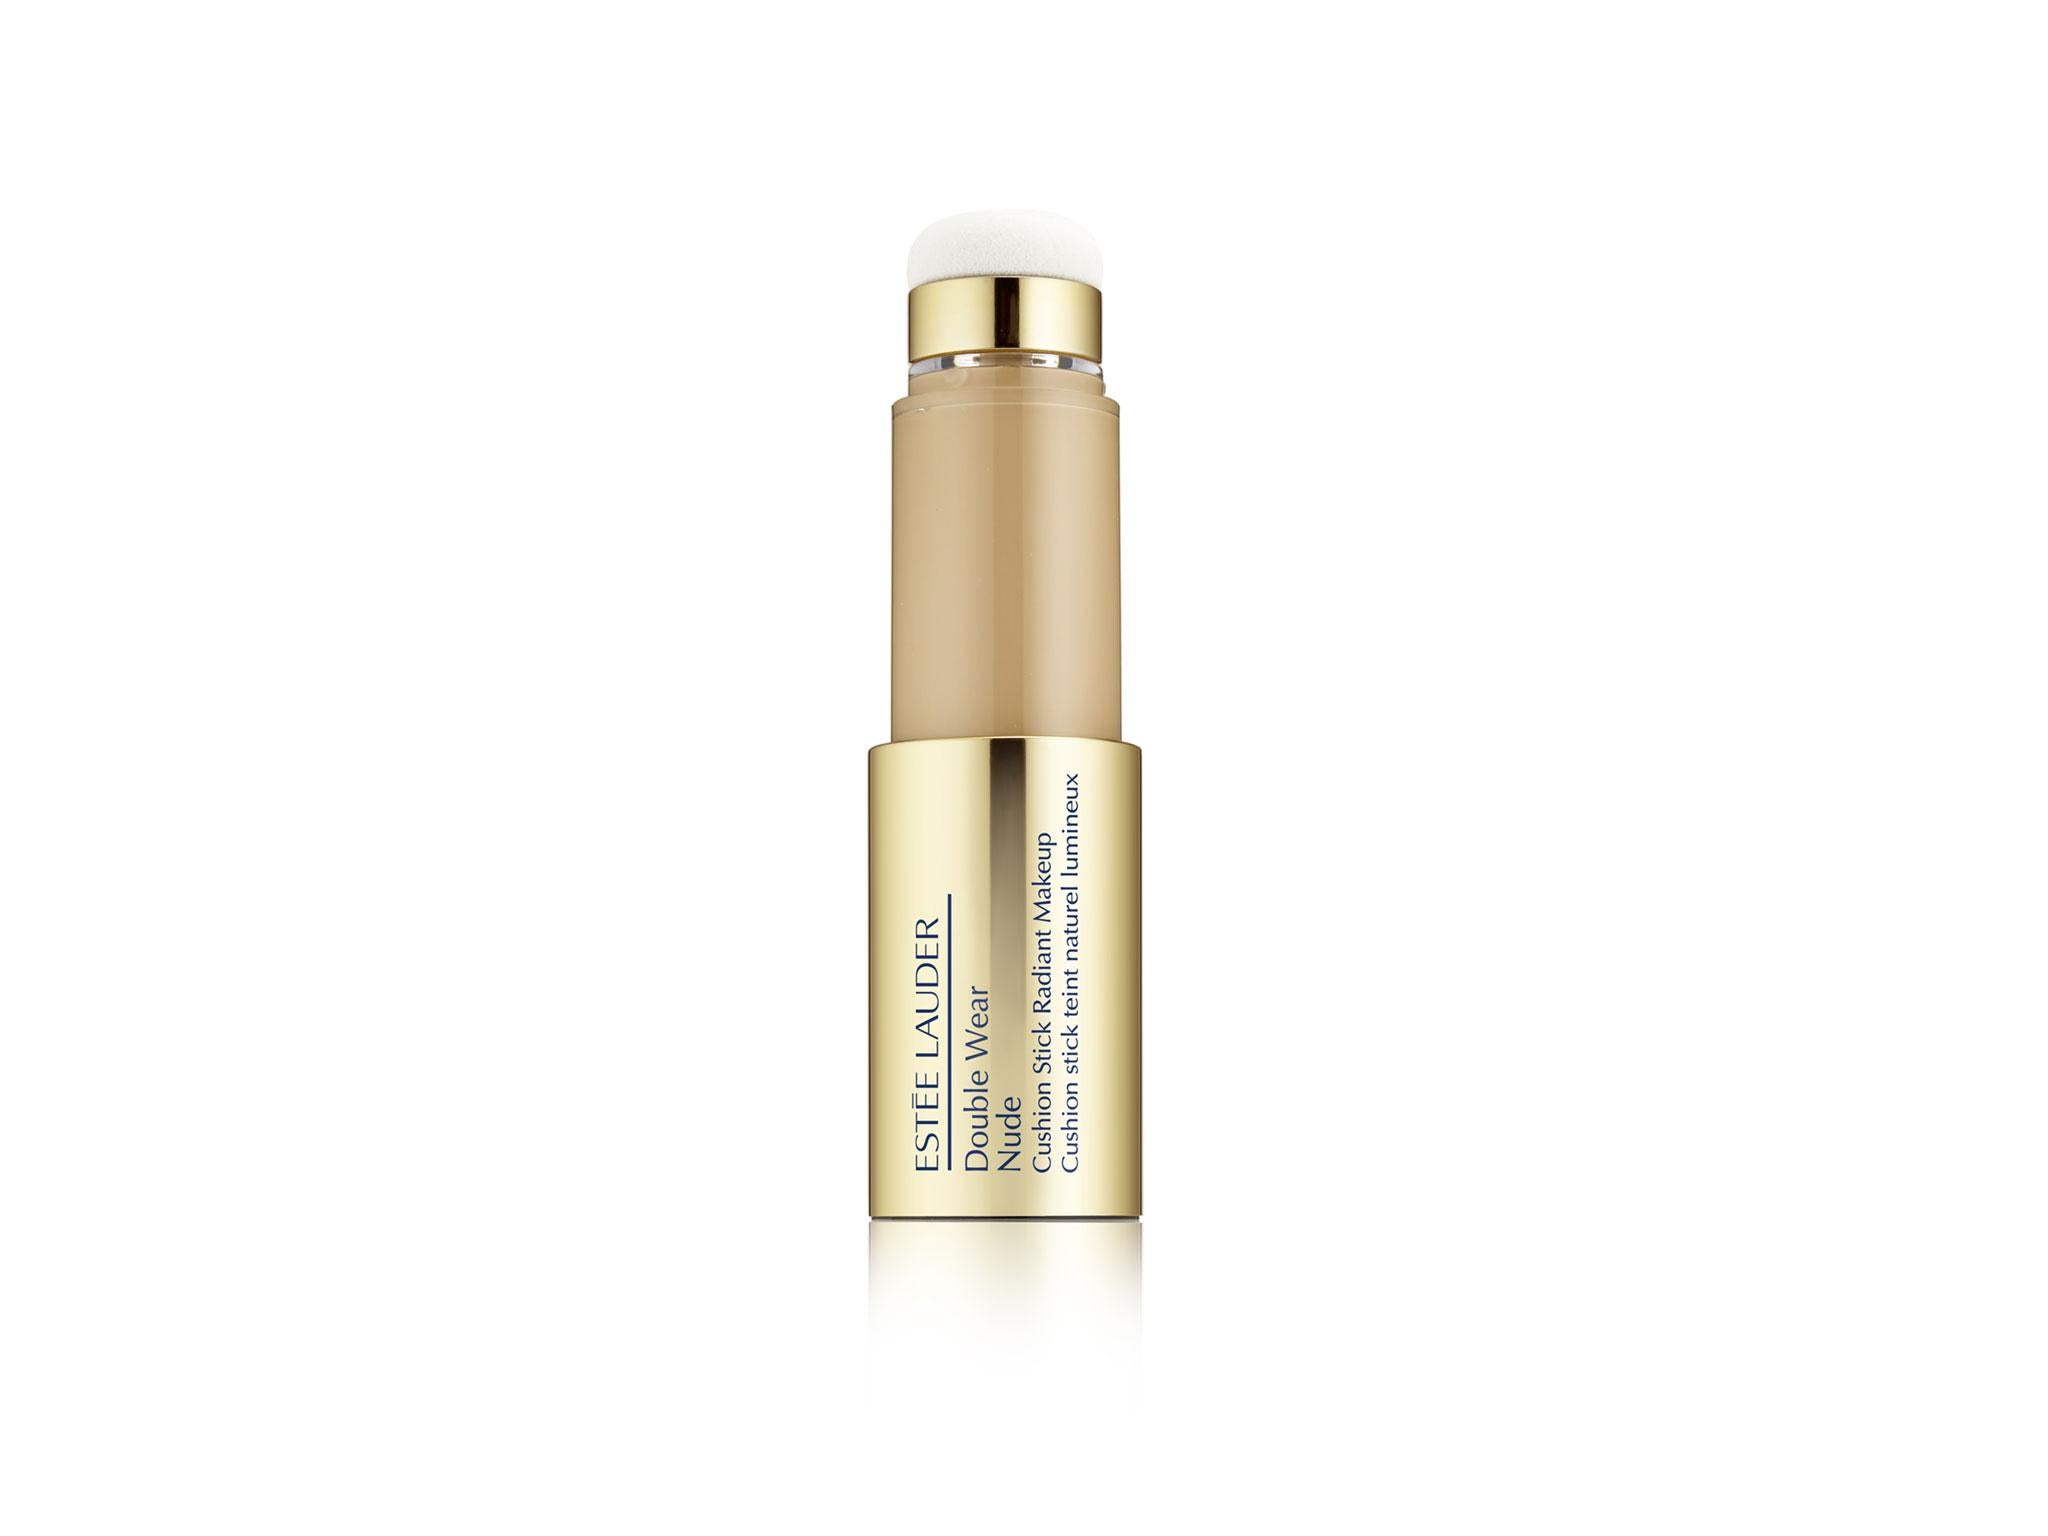 10 Best Foundations For Olive Skin The Independent